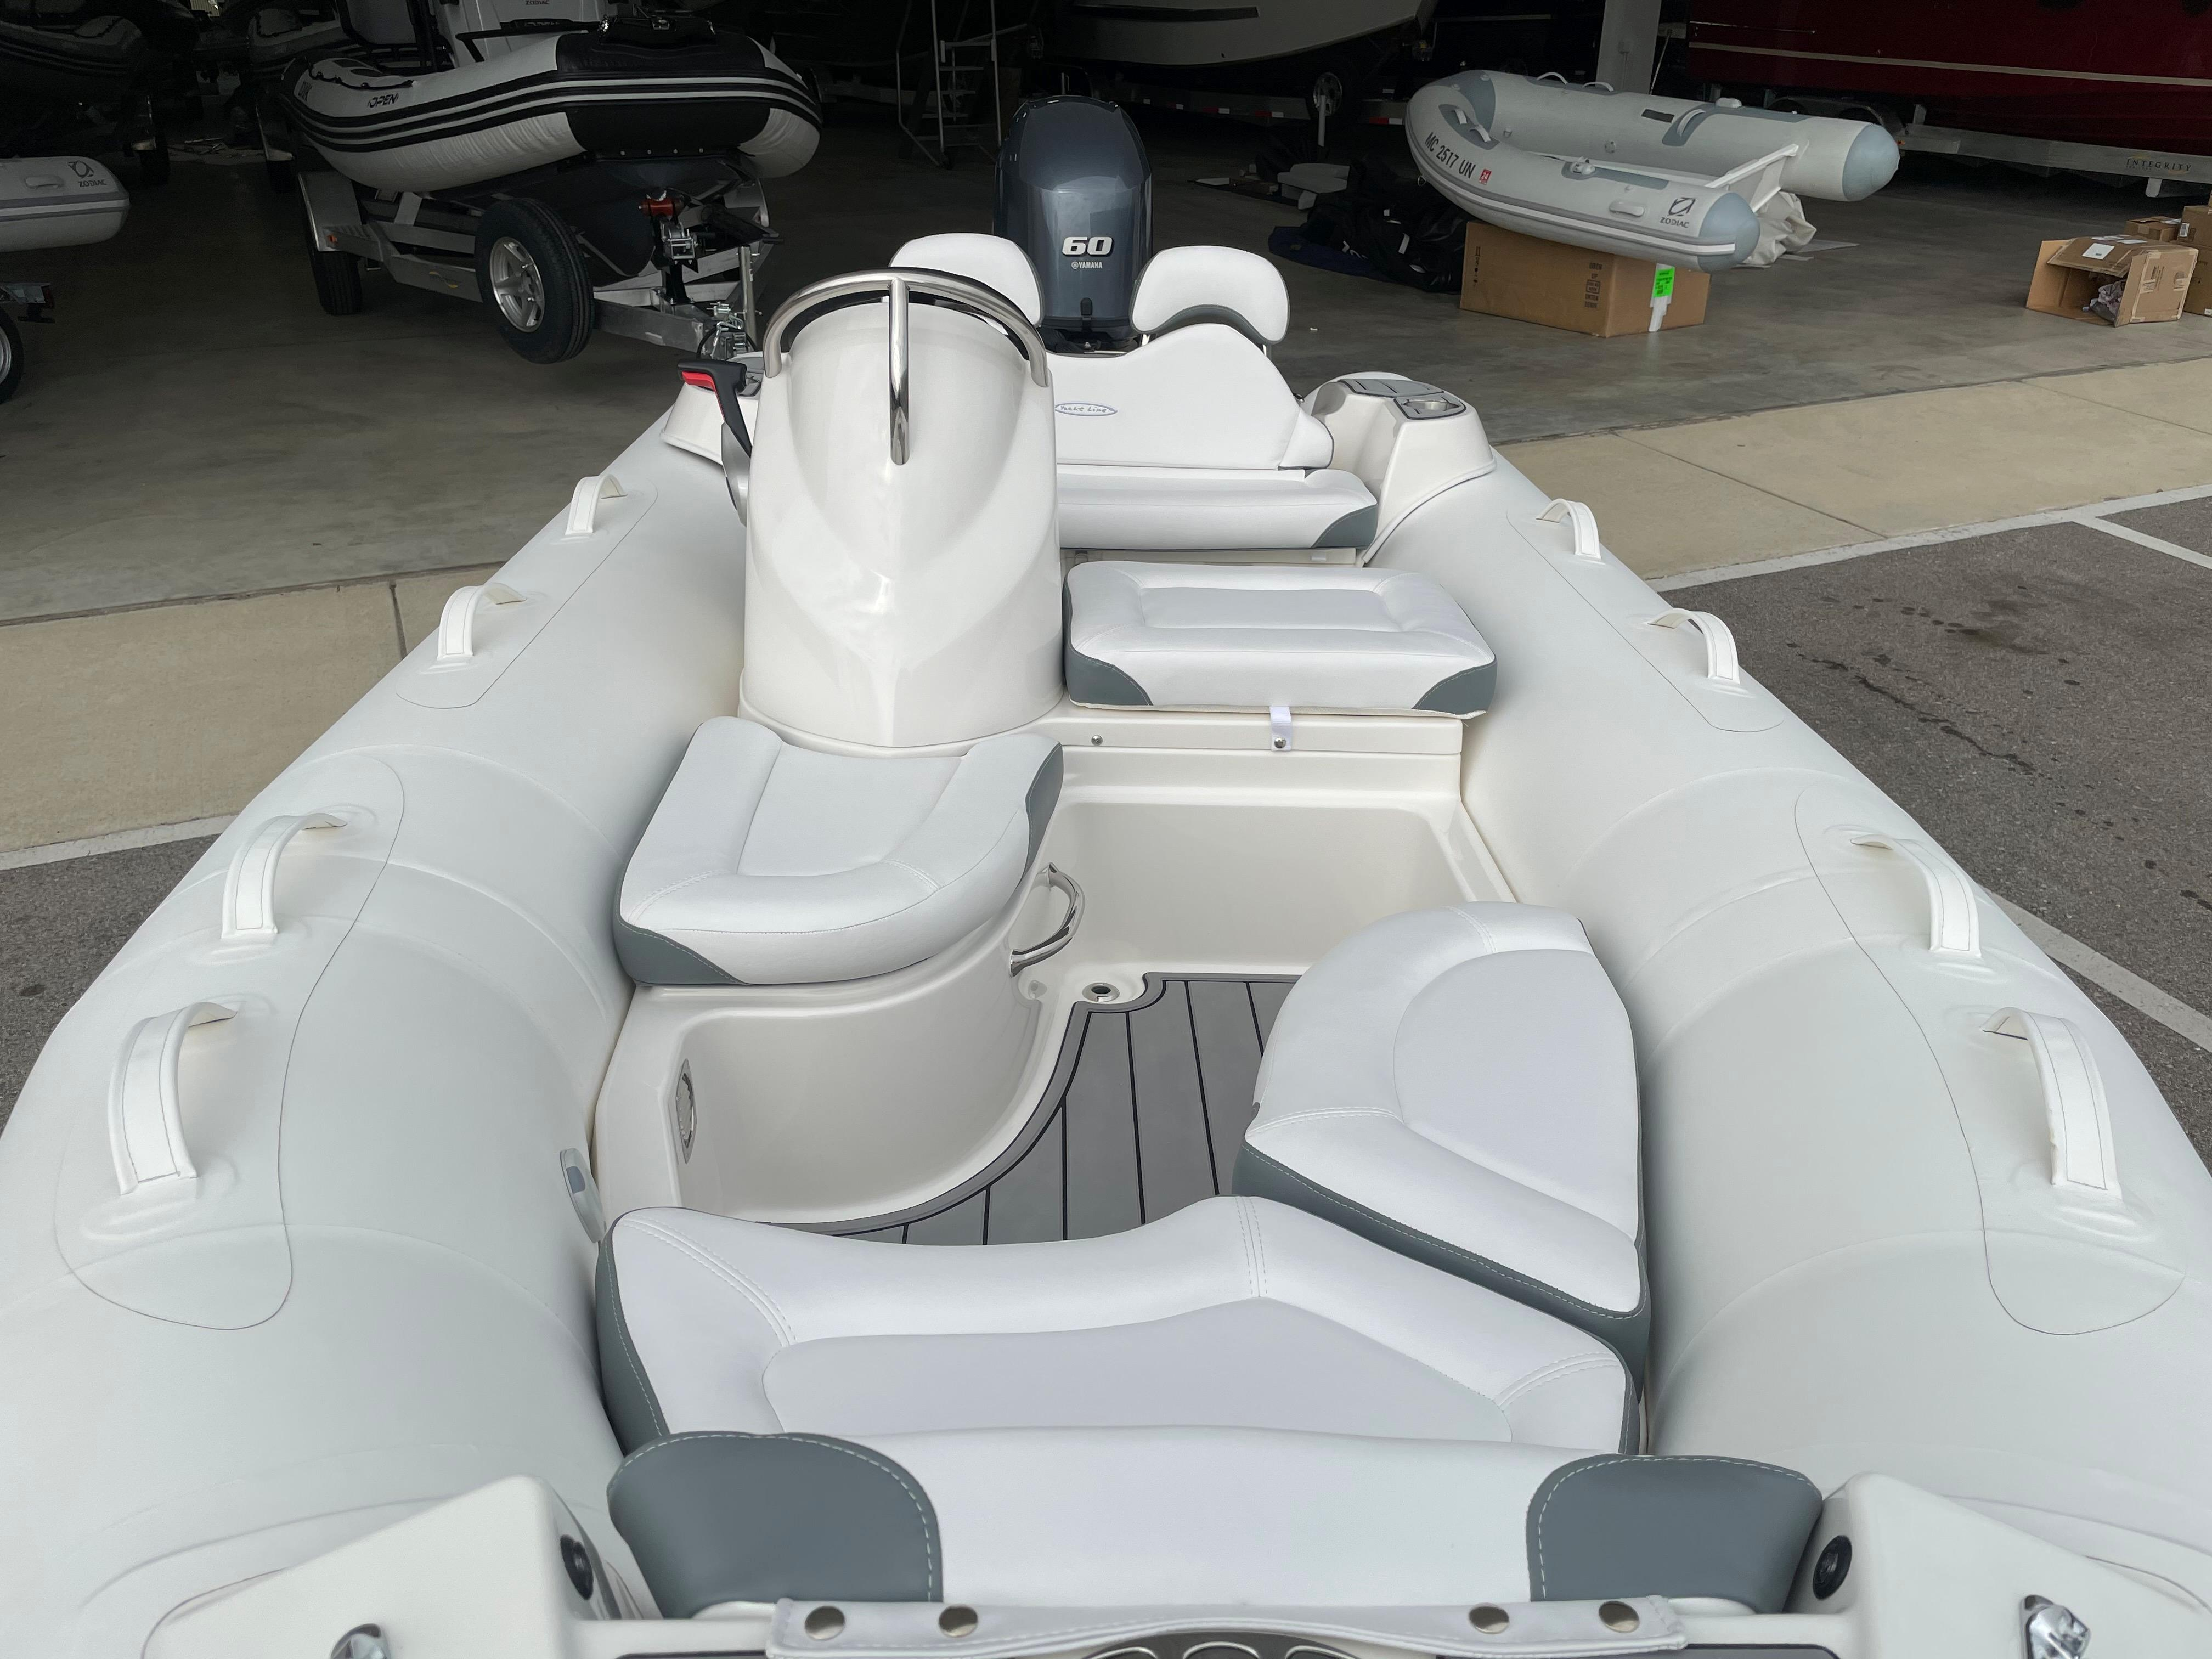 2022 Zodiac Yachtline 440 Deluxe NEO GL Edition 60hp On Order, Image 9